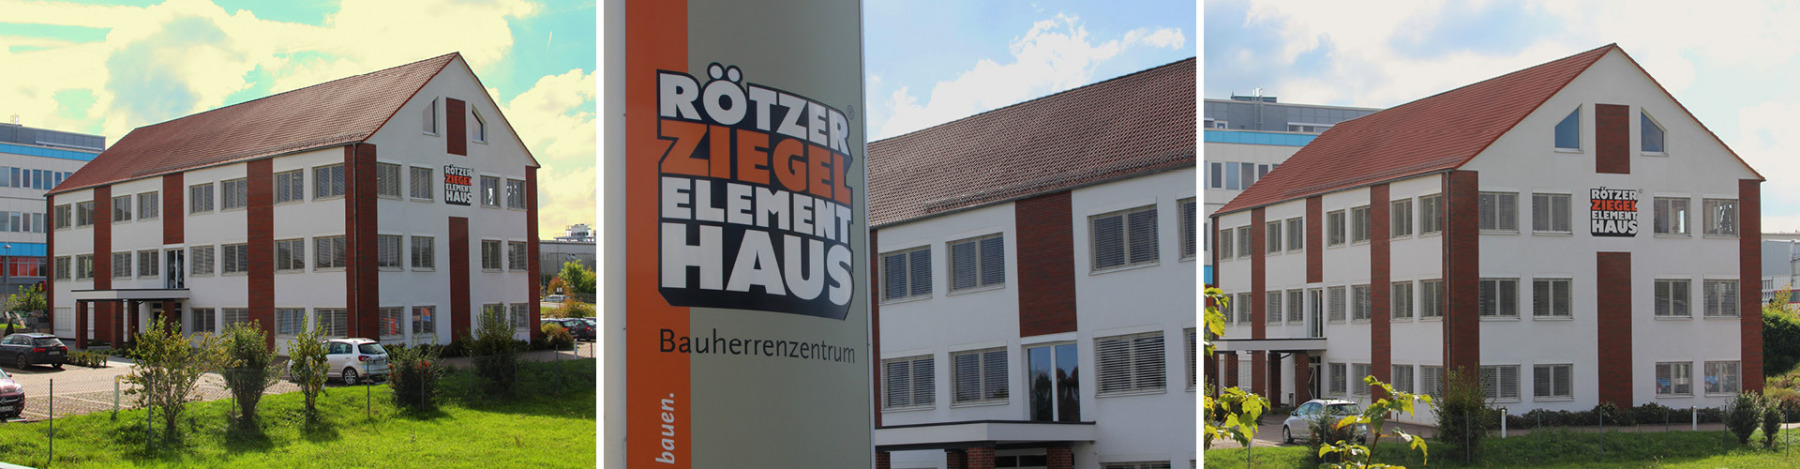 Bauherrenzentrum.jpg